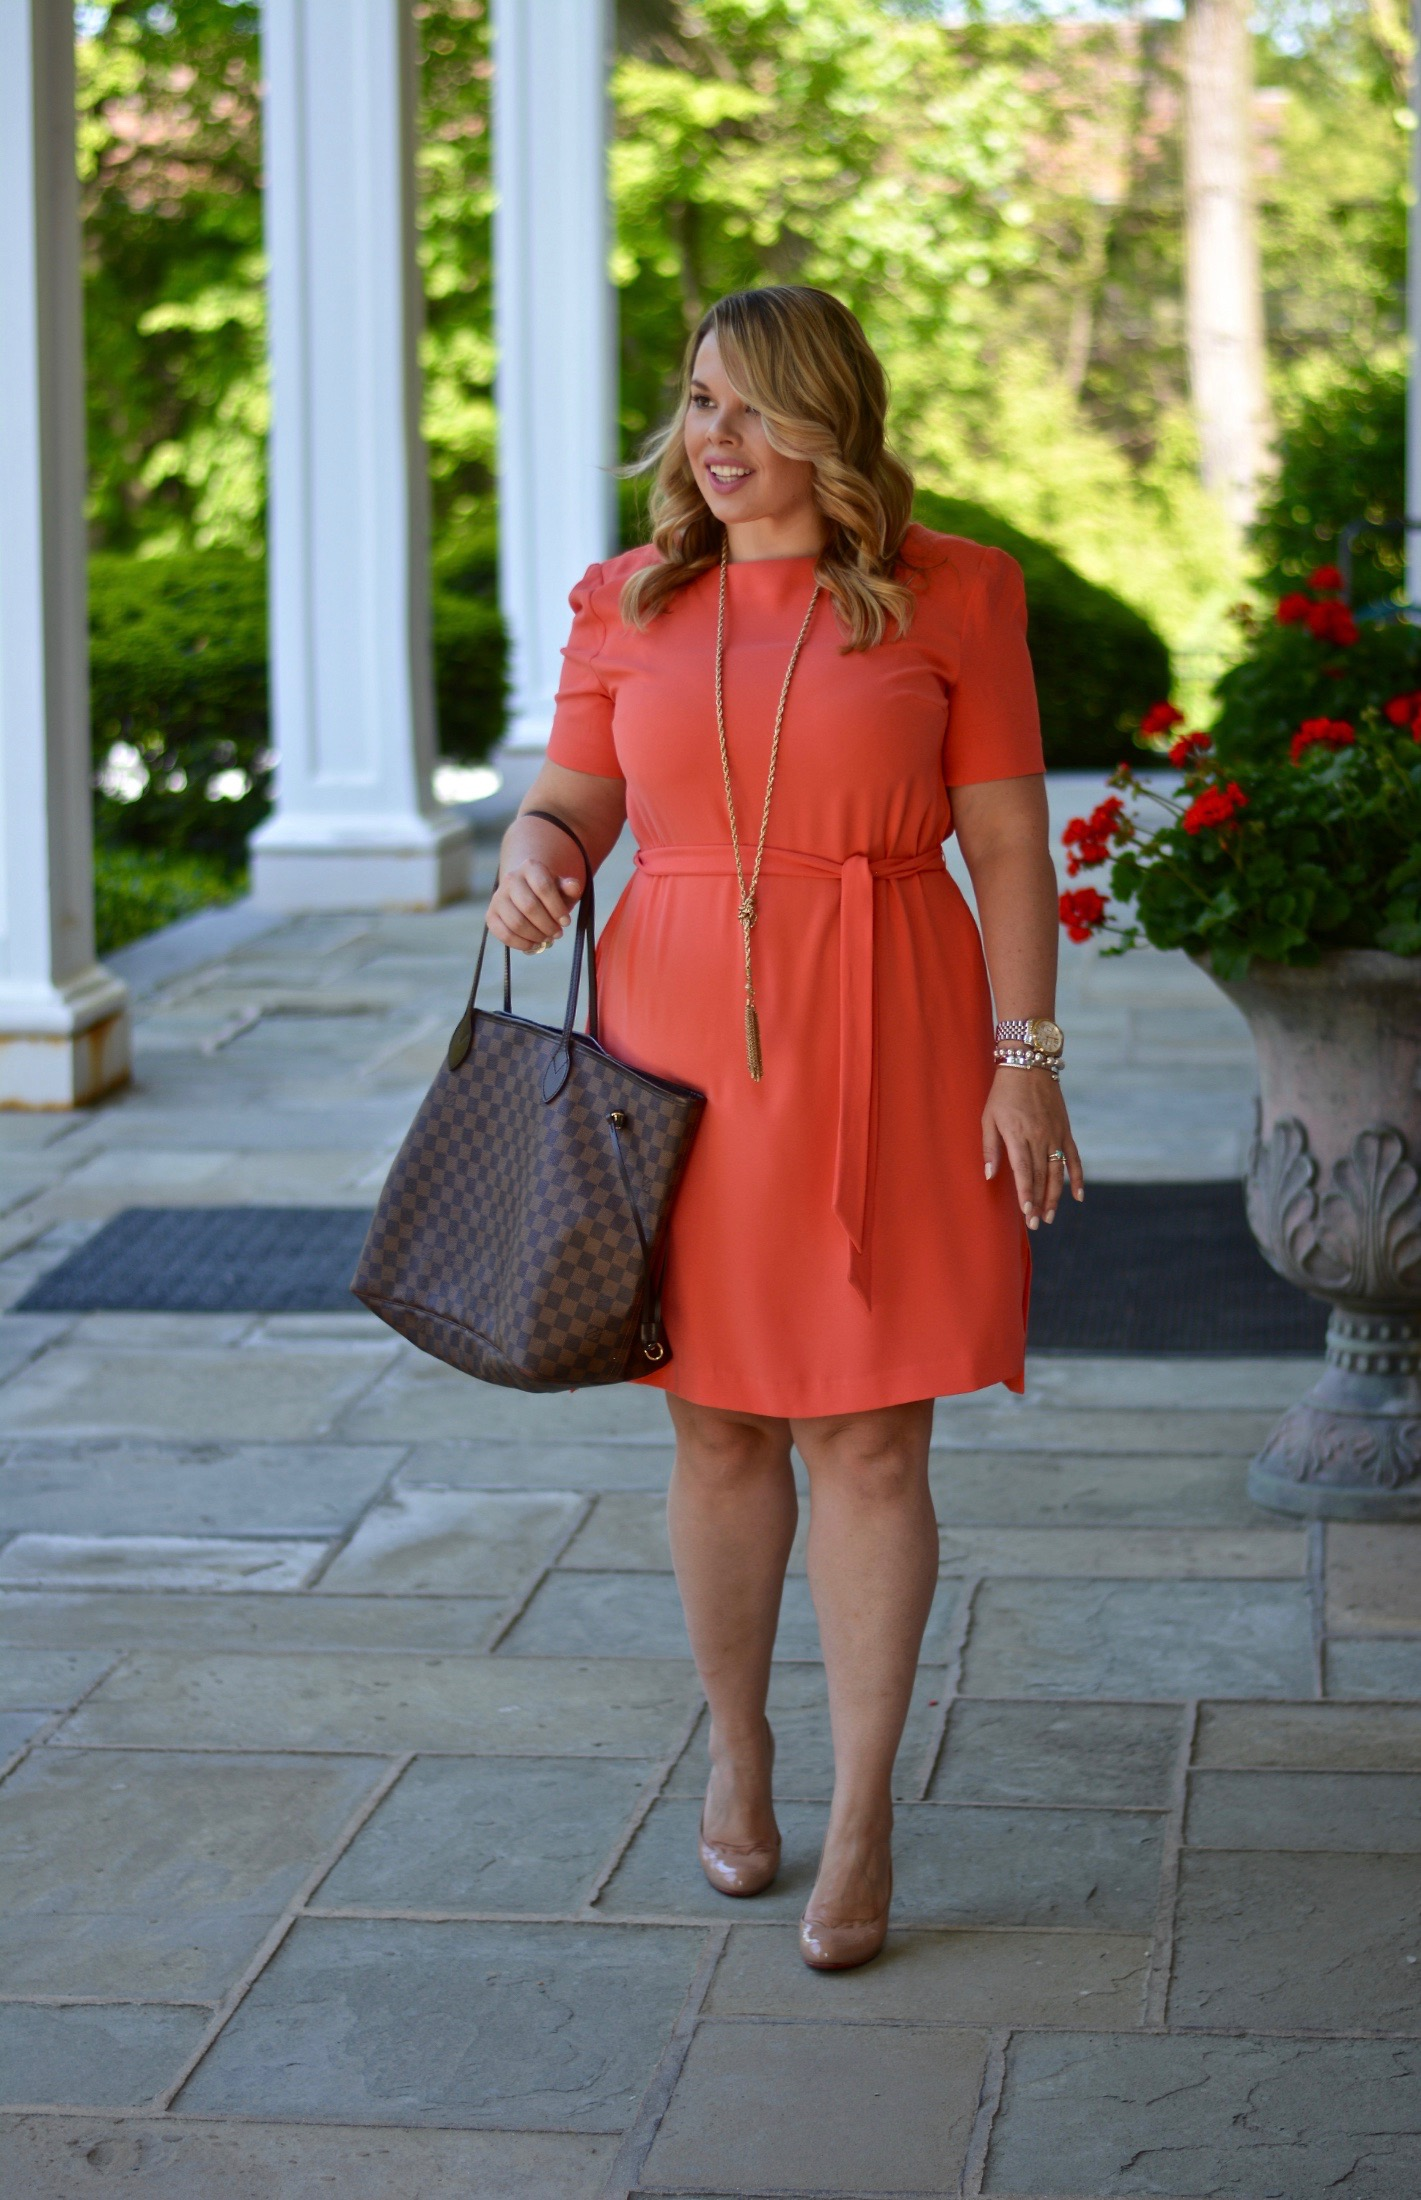 workwear-wednesday-belted-dress-5